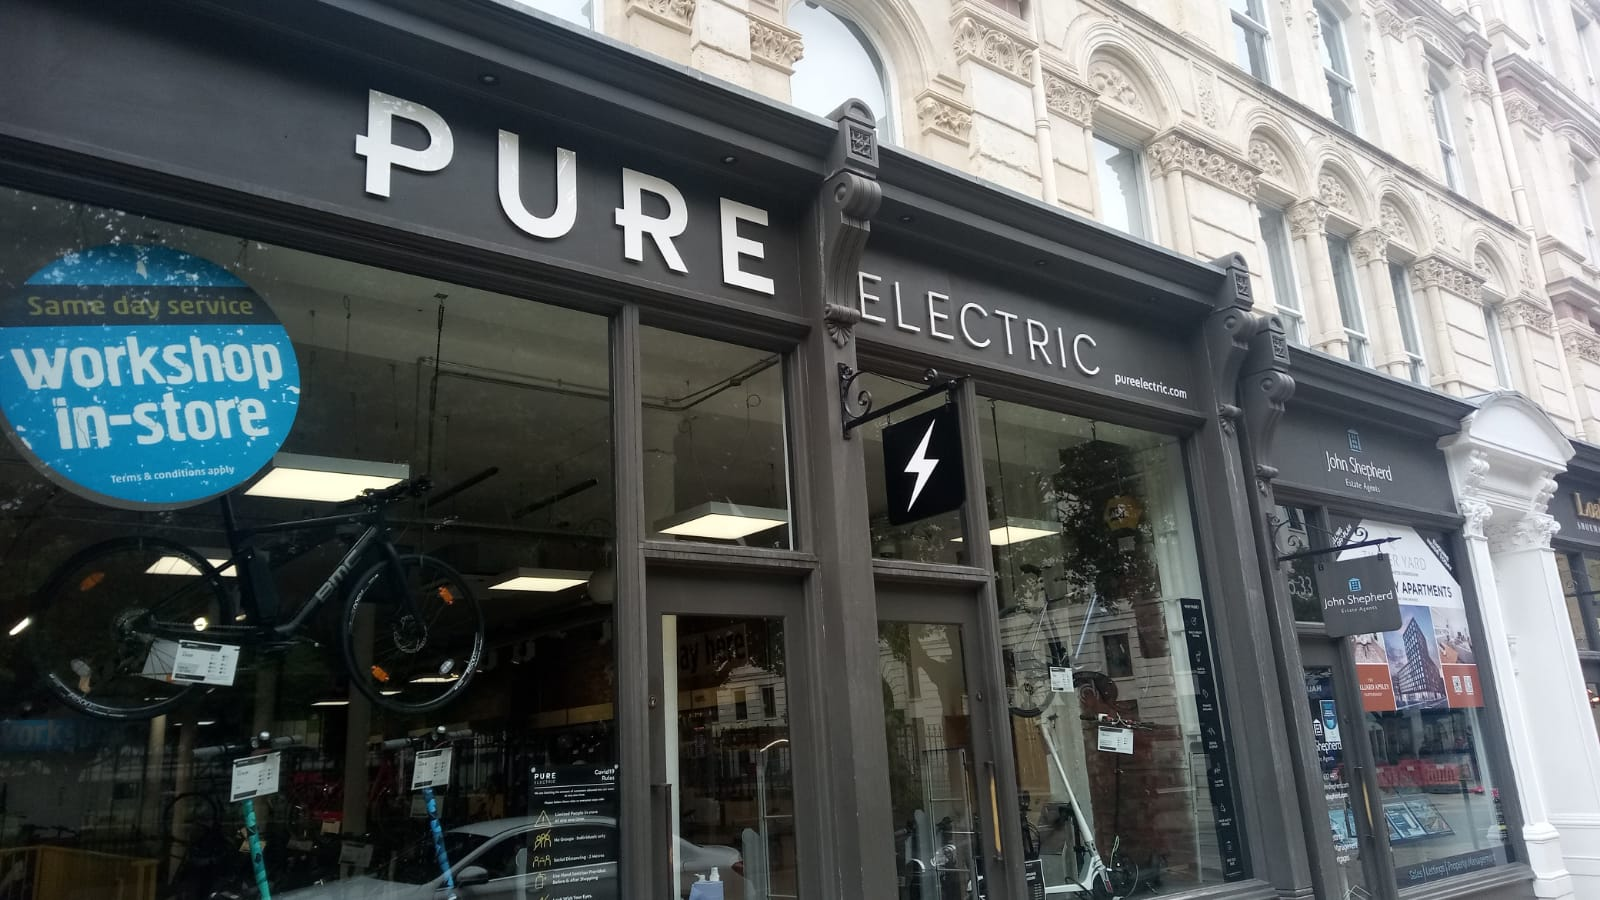 Pure electric